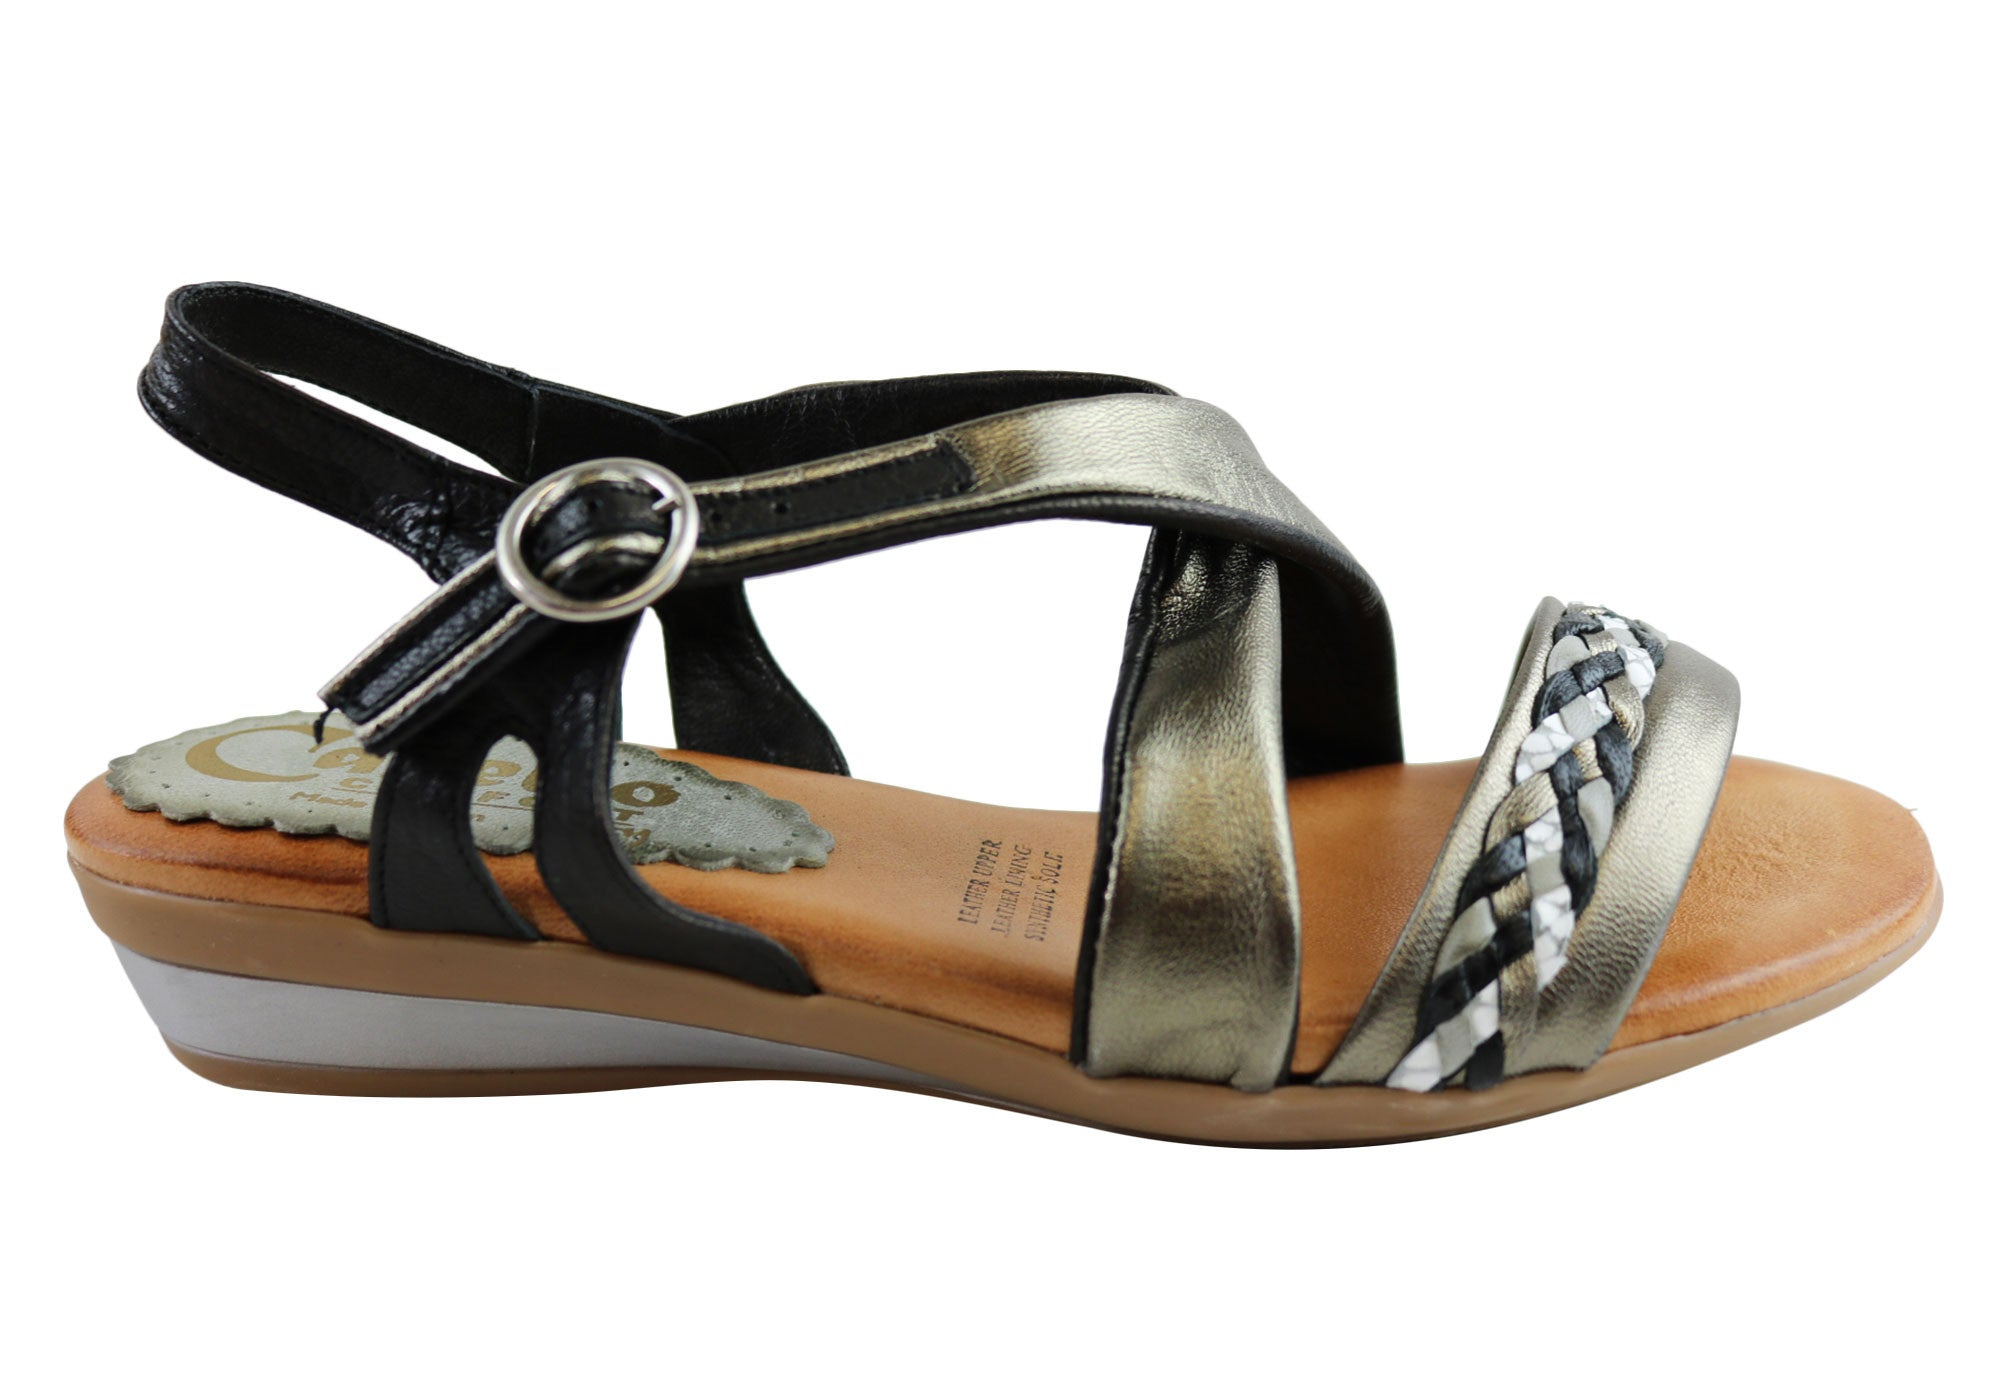 633ef7834b1 Cabello Comfort 3716 Womens Leather Sandals Made In Spain